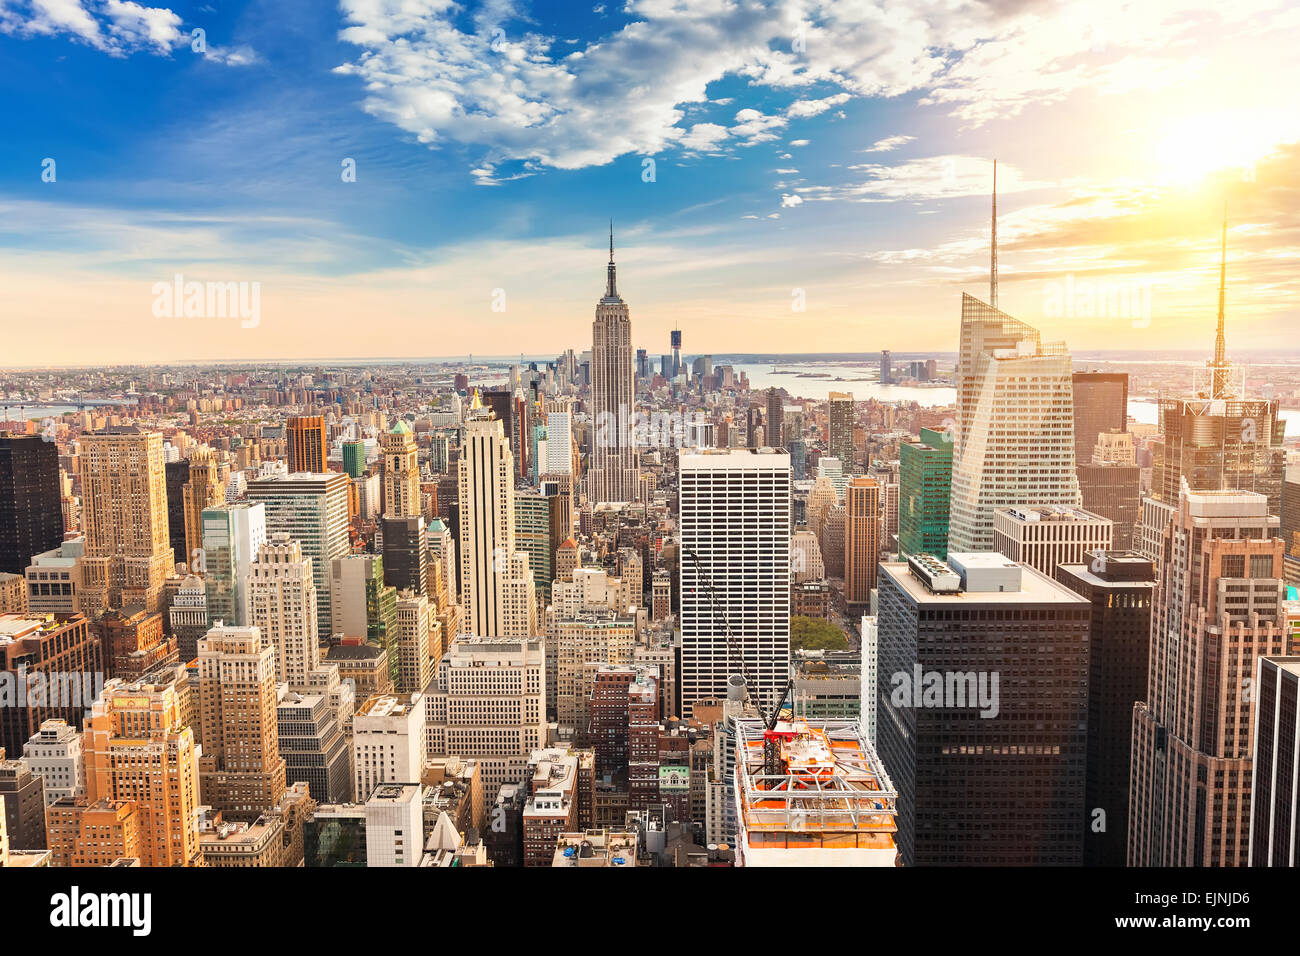 Manhattan Luftbild Stockbild